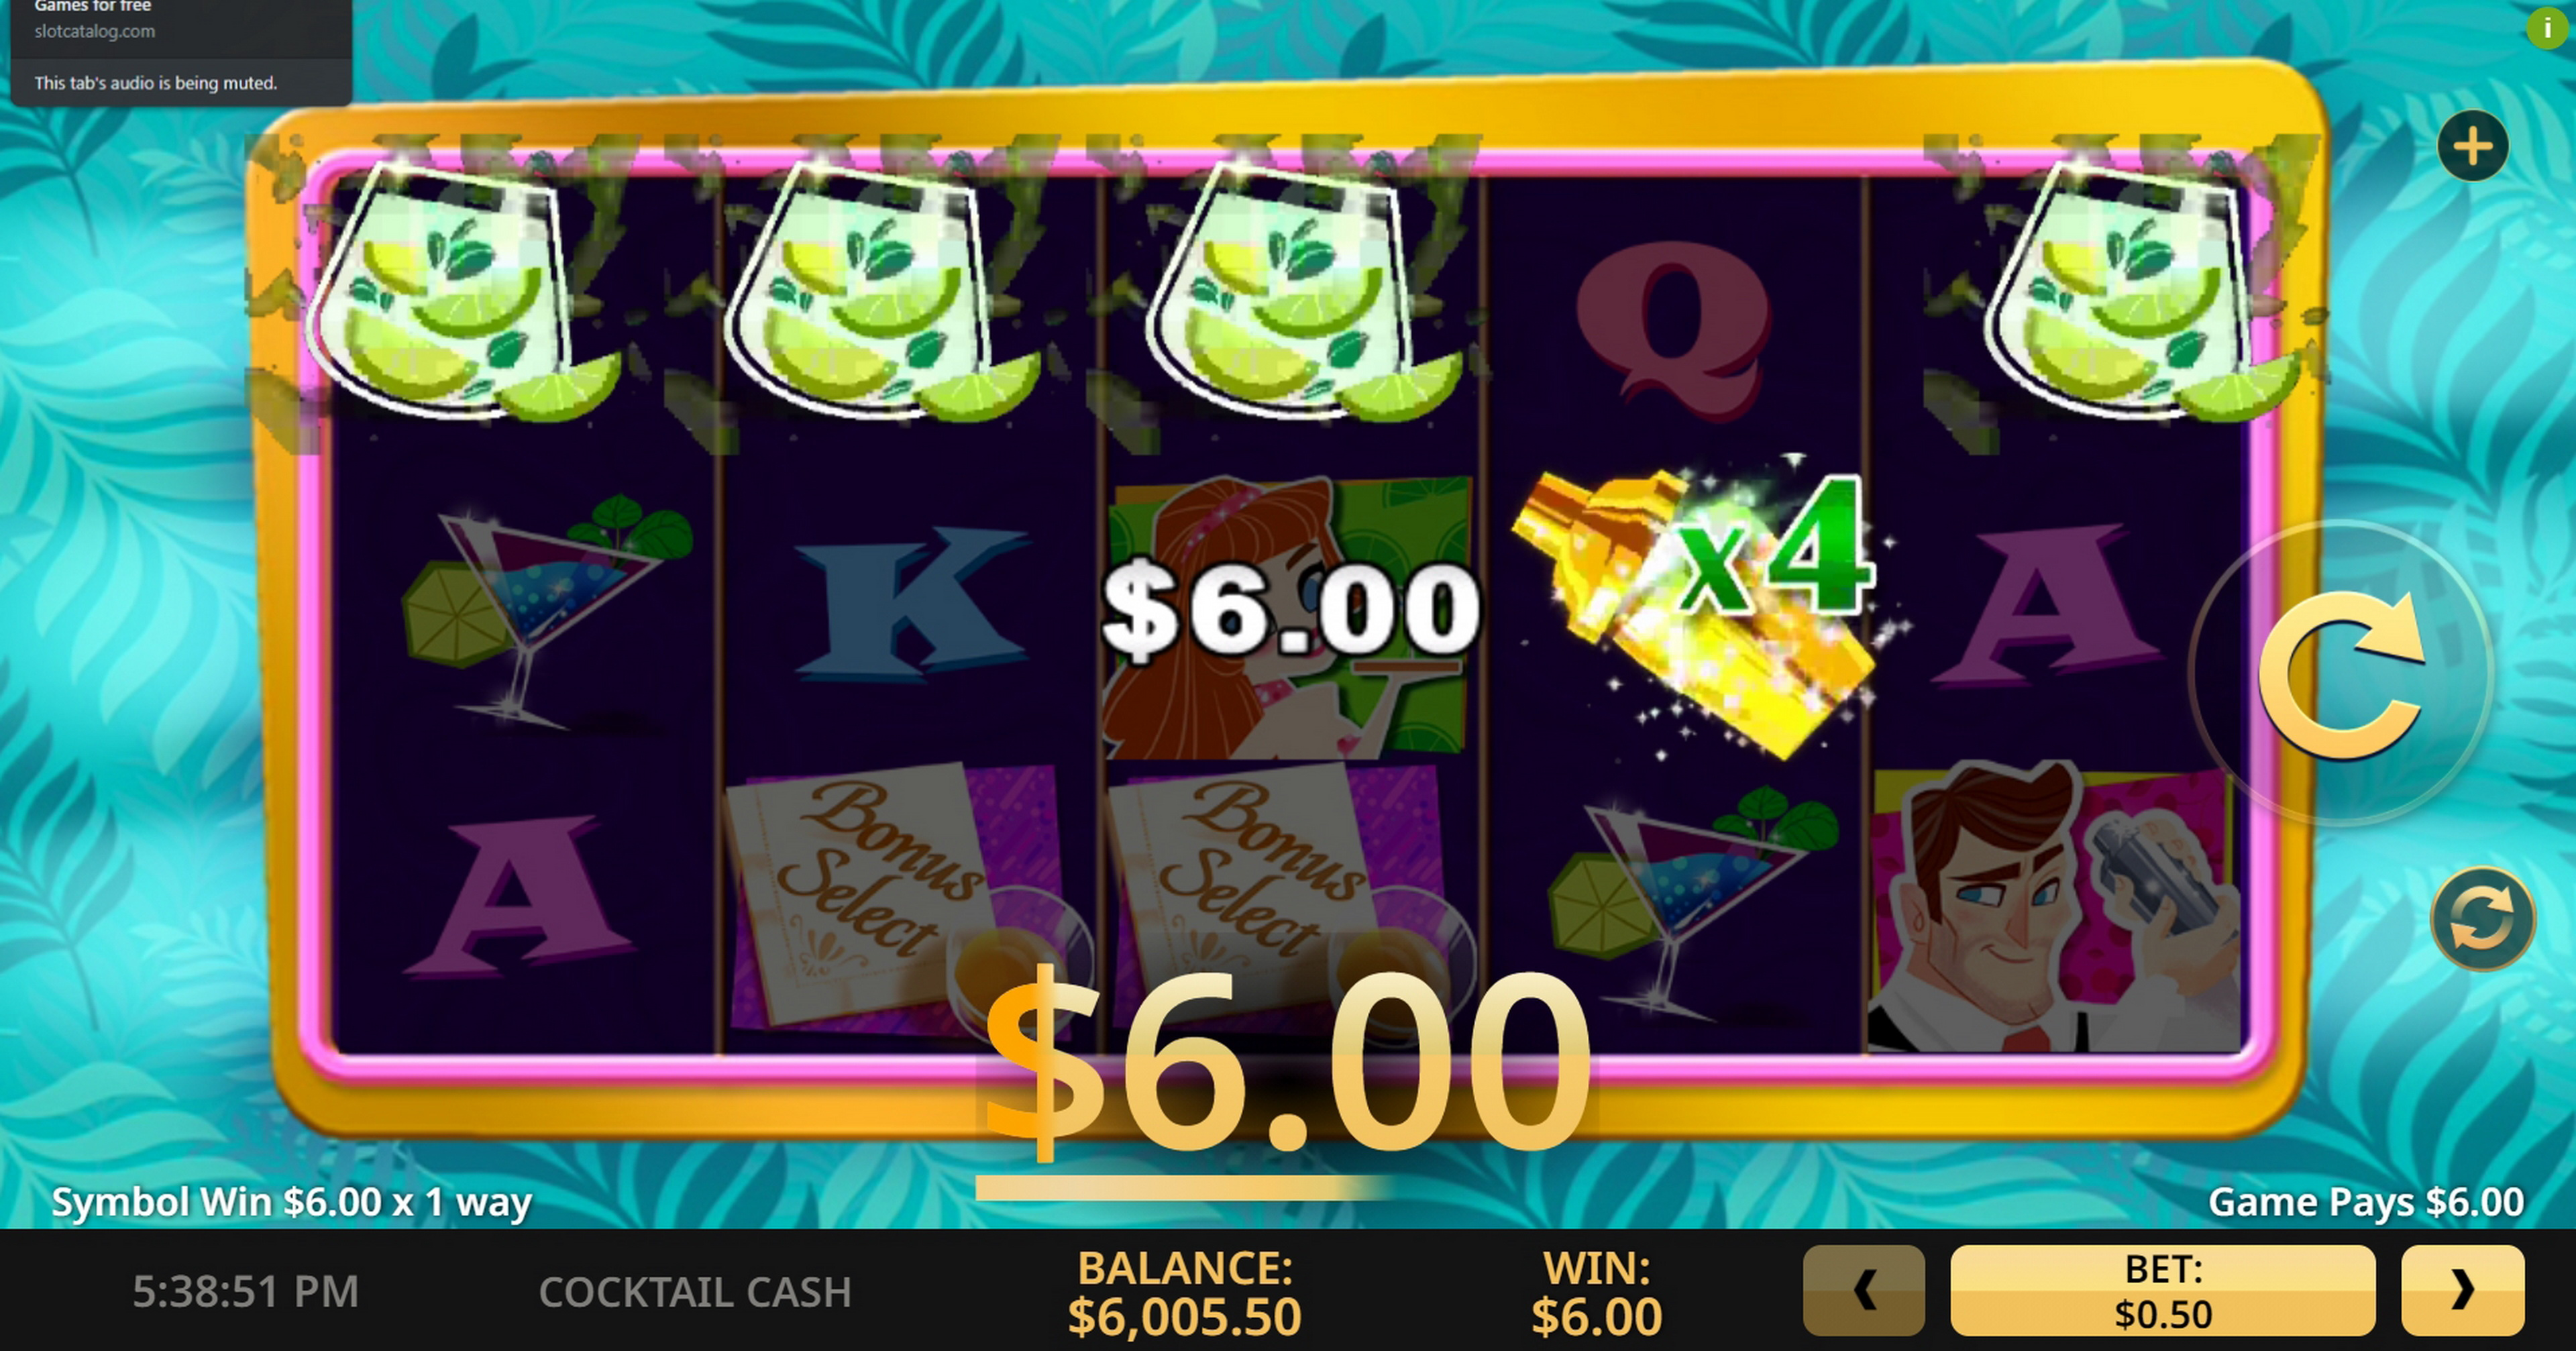 Win Money in Cocktail Cash Free Slot Game by High 5 Games